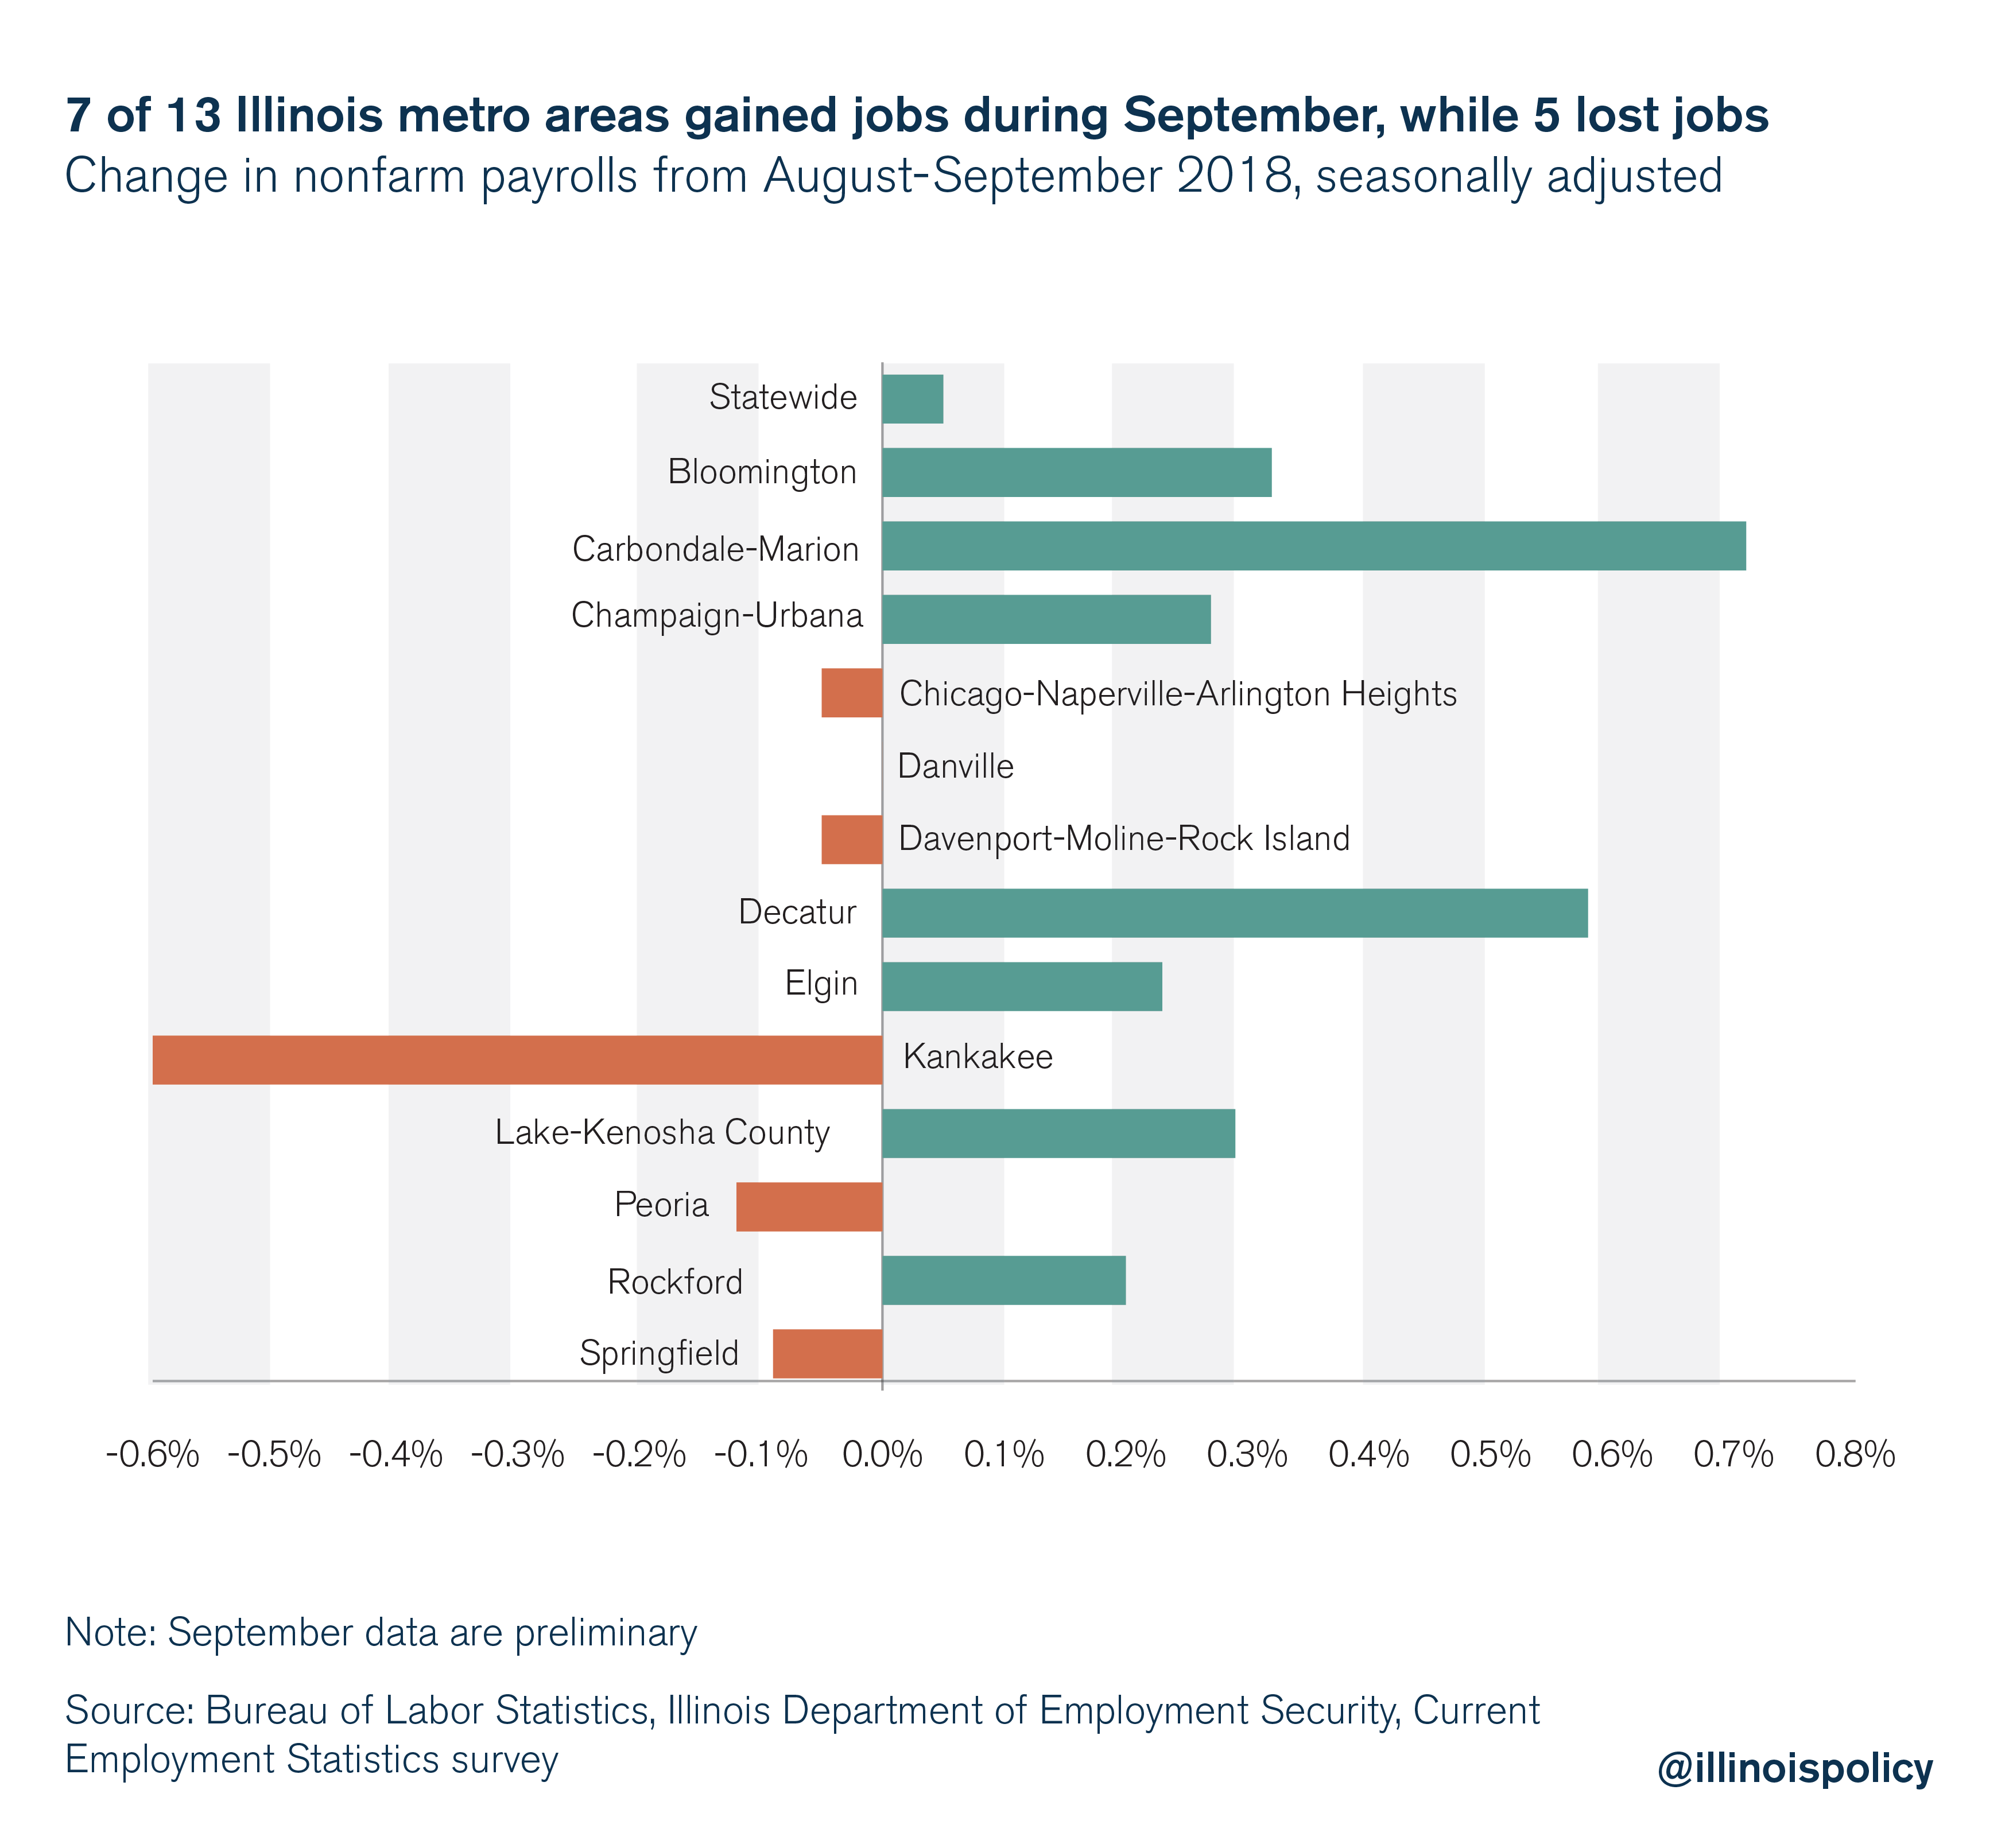 7 of 13 Illinois metro areas gain jobs during September, while 5 lost jobs